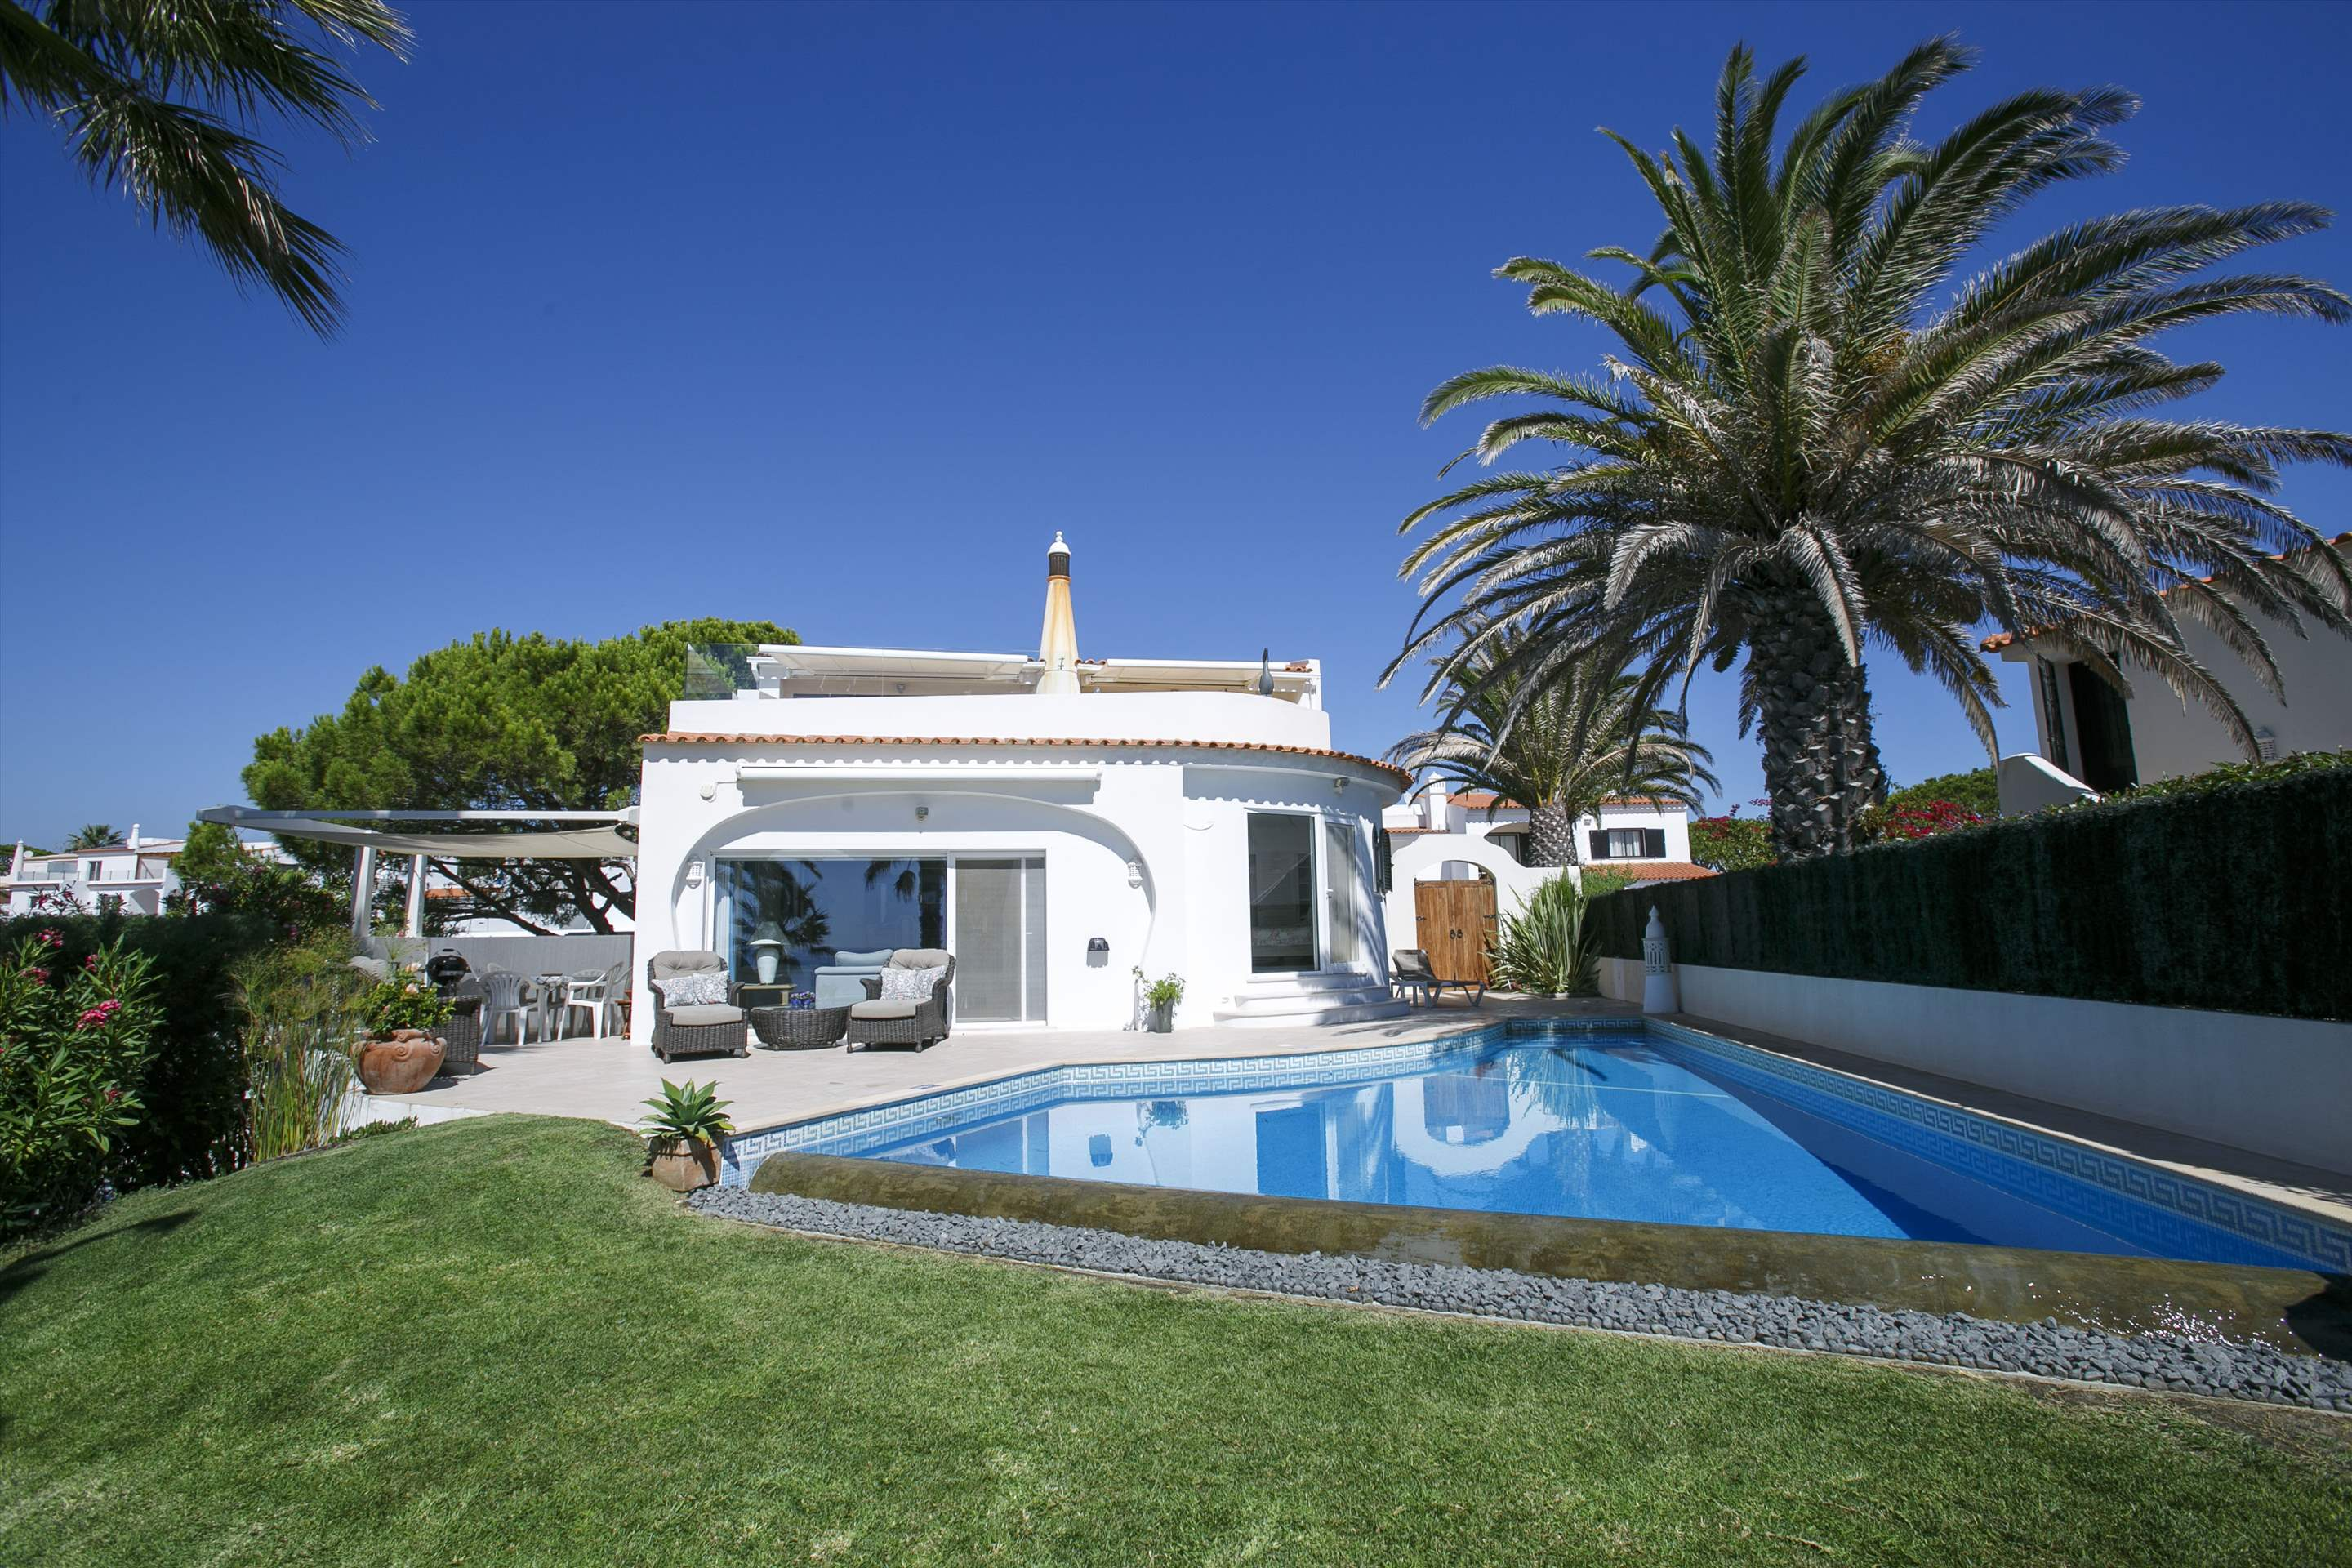 Villa Ocean Beach, 4 bedroom villa in Vale do Lobo, Algarve Photo #1